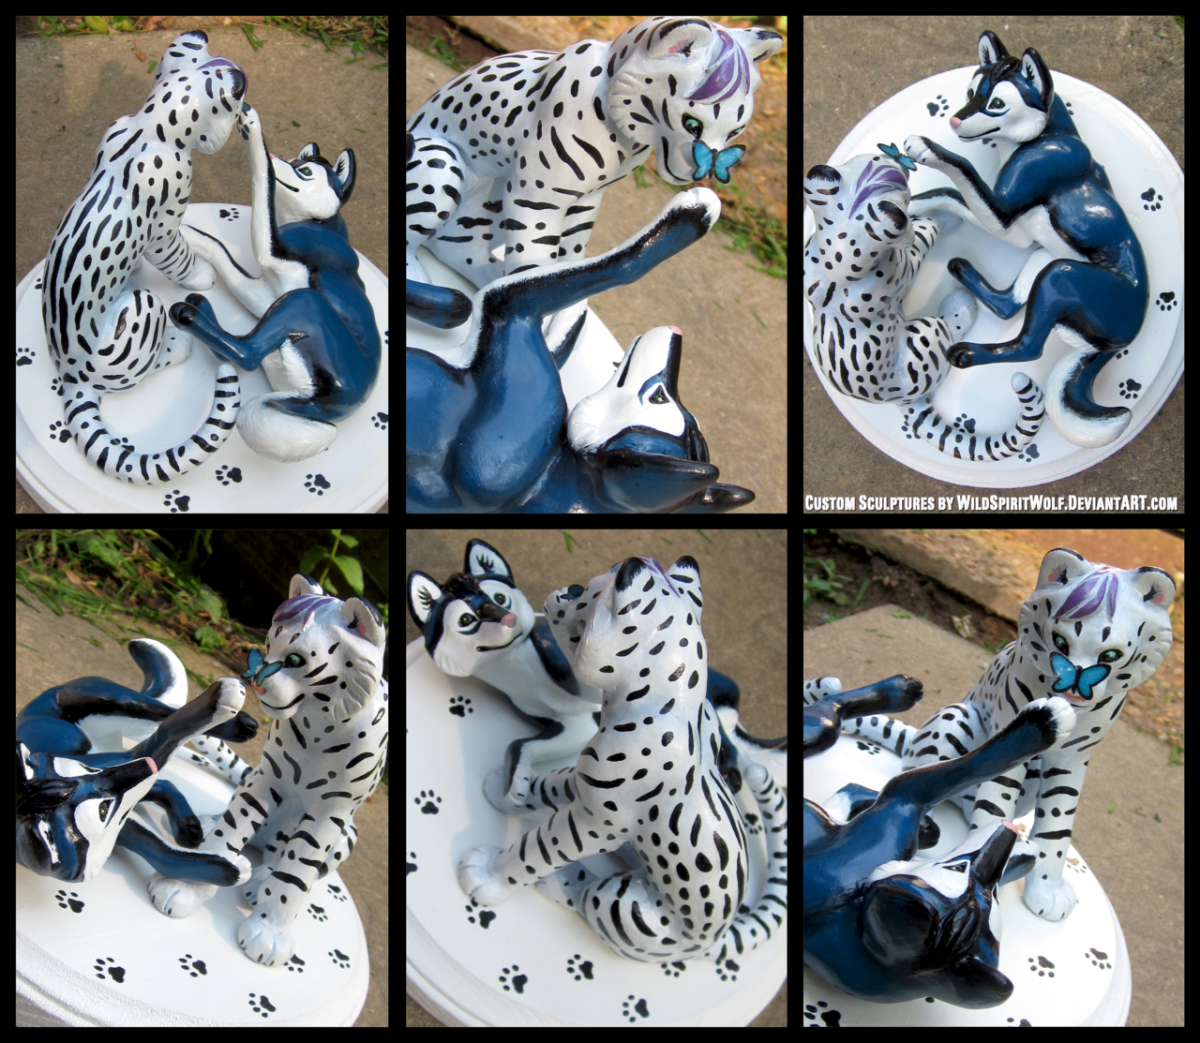 This white tiger and blue canine are an odd match, but beautiful nonetheless. There is even a butterfly to add a hint of playfulness to the pair's interaction.